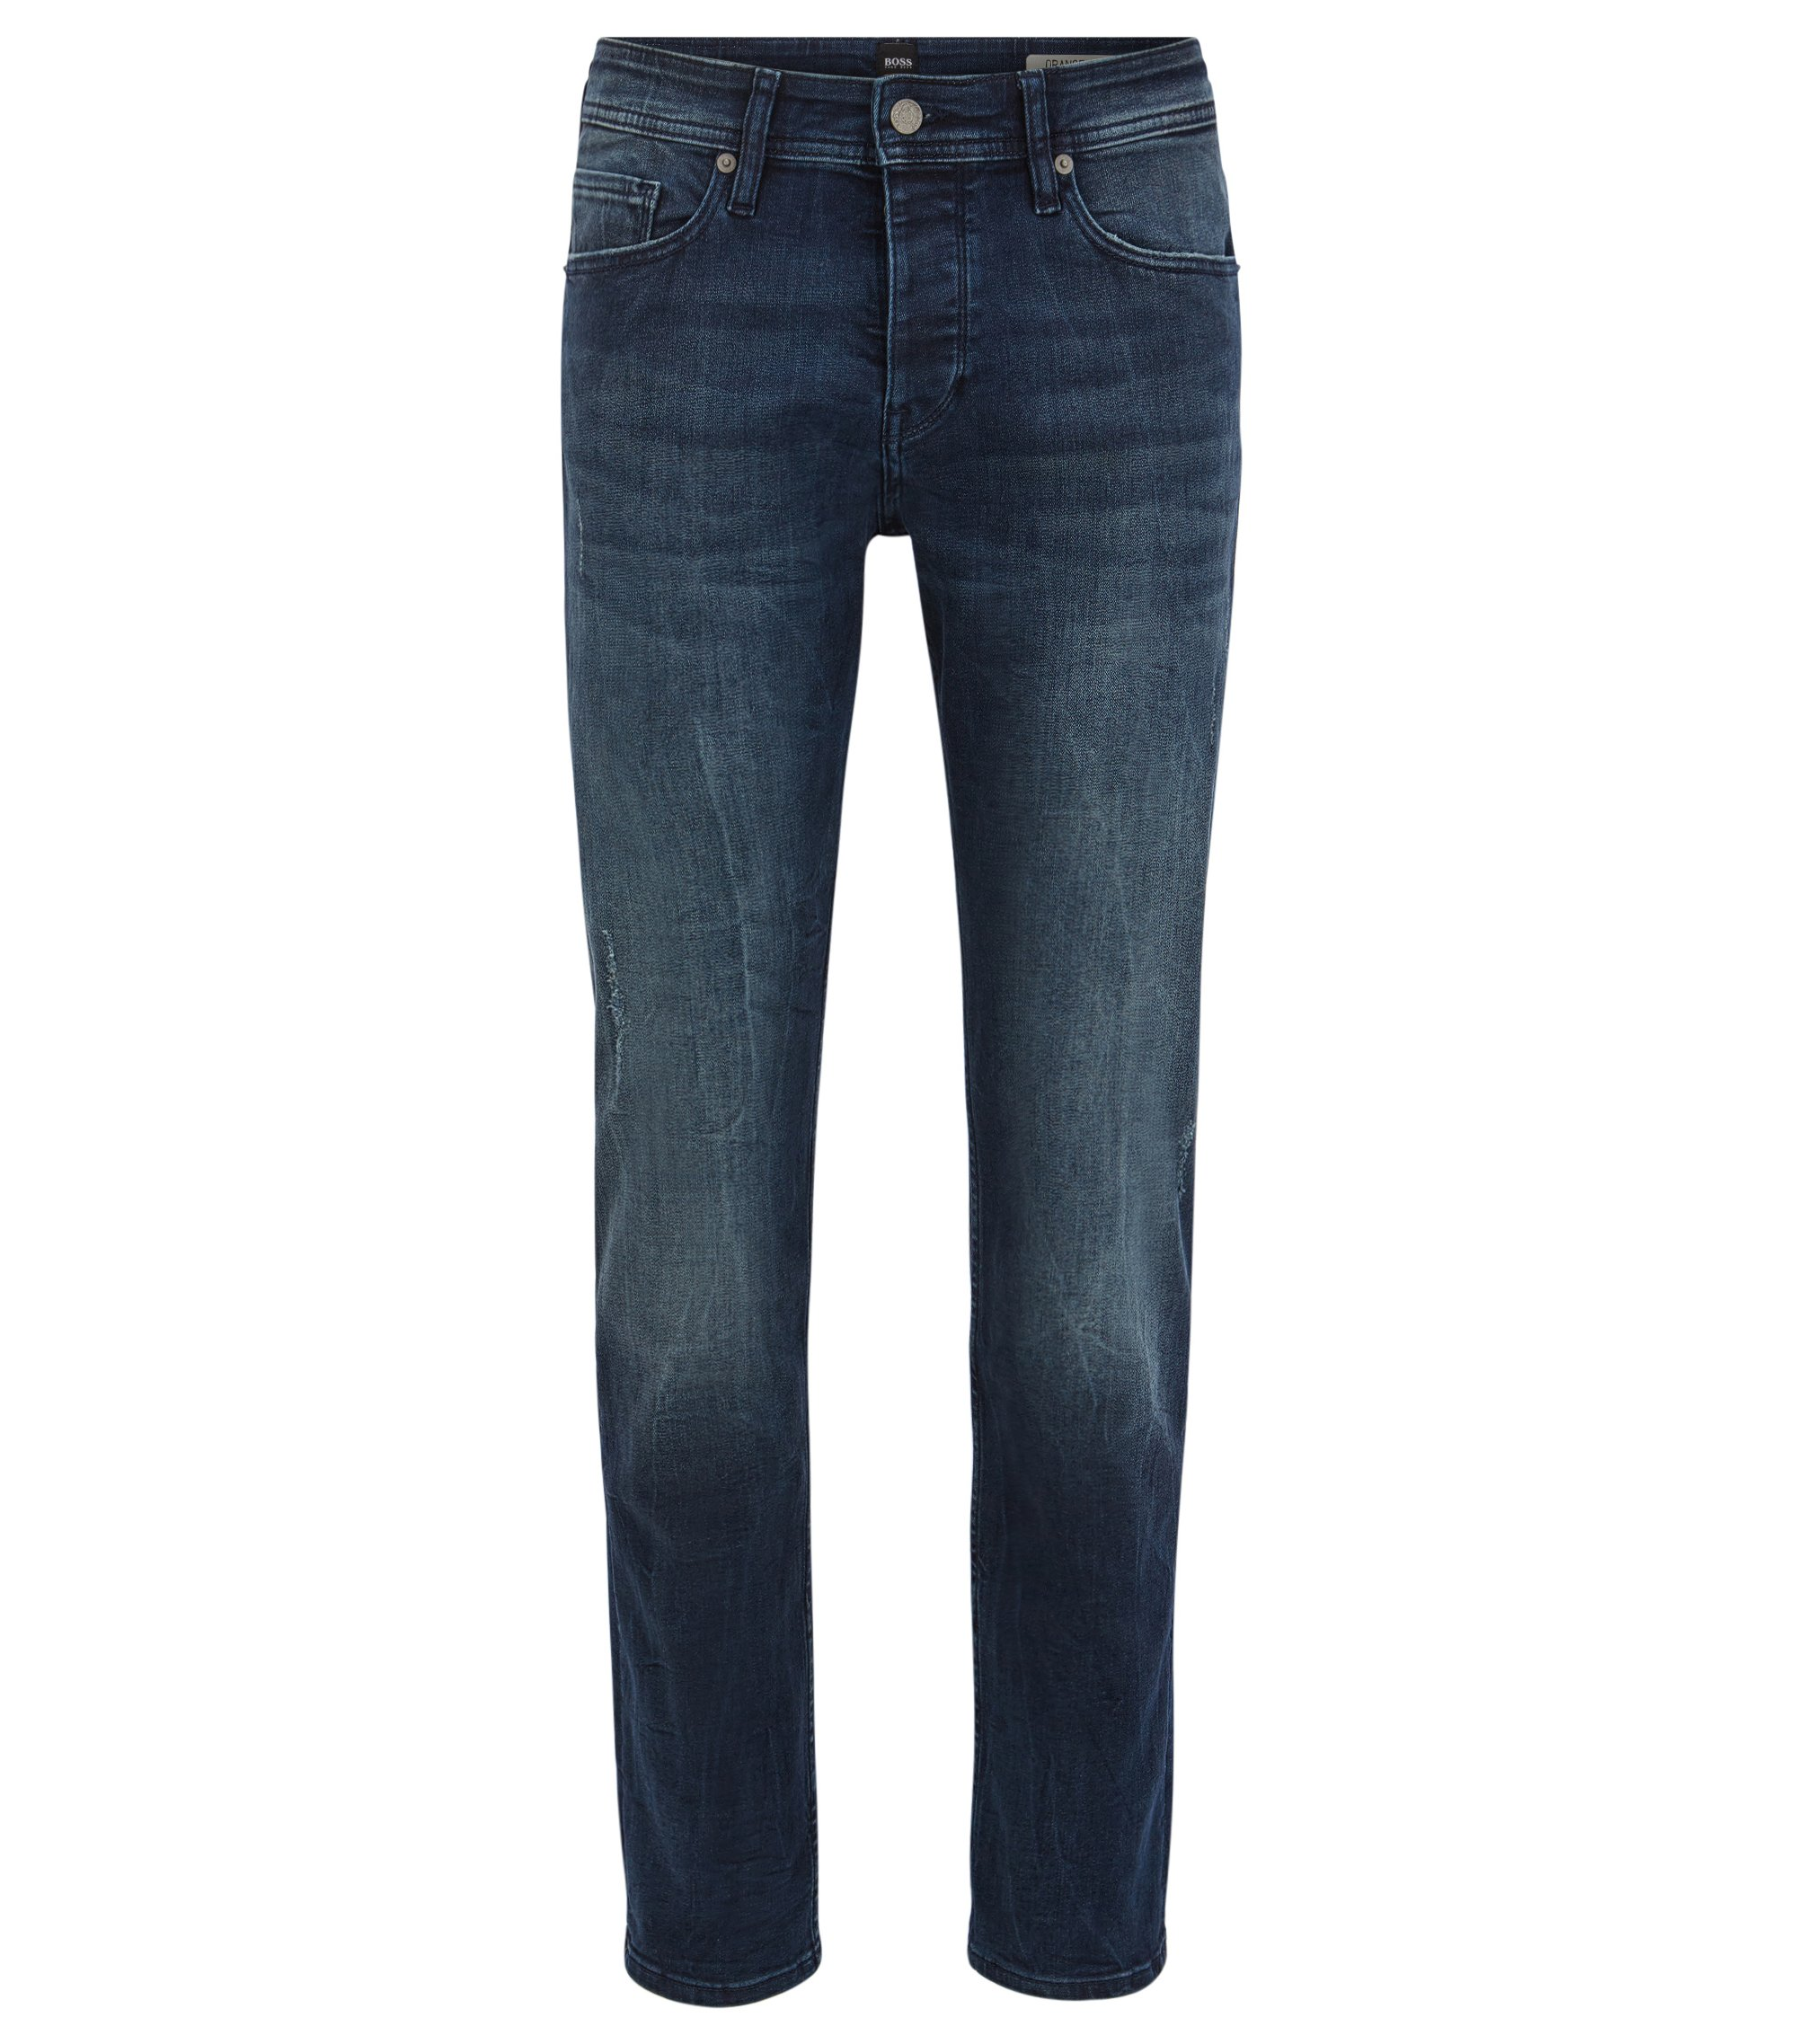 Jean fuselé Tapered Fit en denim super stretch indigo profond, à la finition usée, Bleu foncé